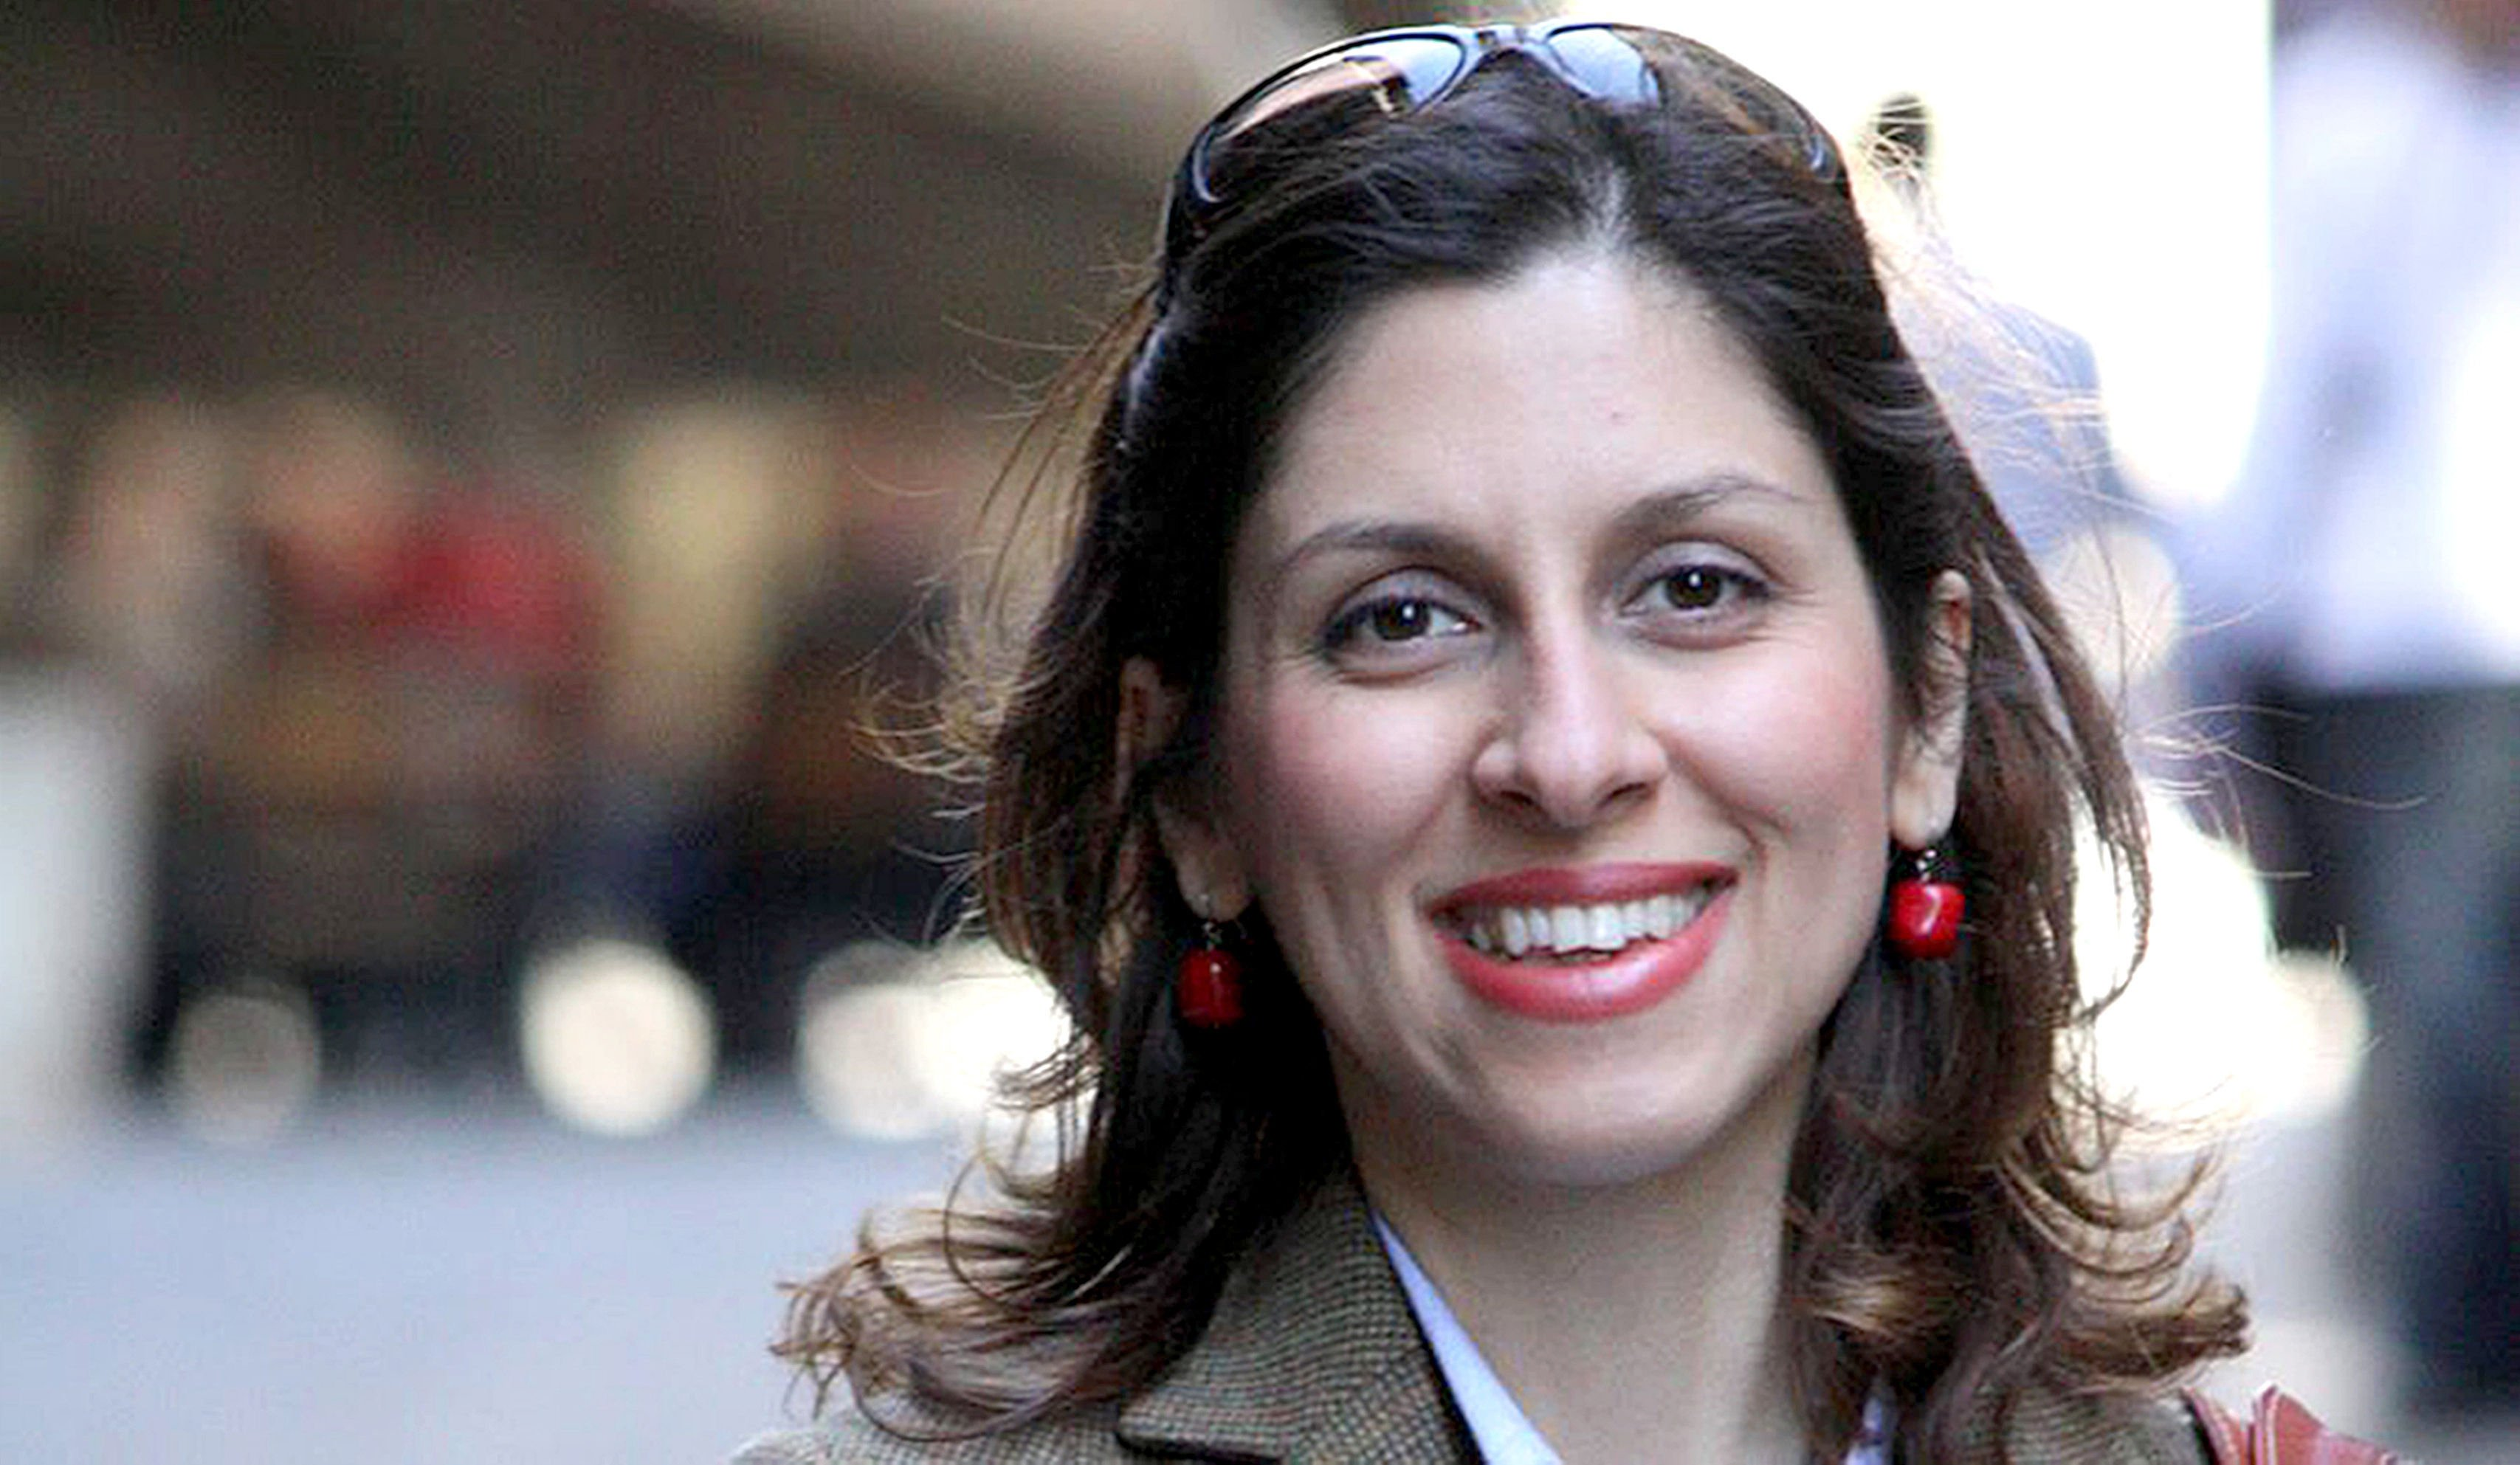 Nazanin 'fairly deflated' as wait for news on clemency continues